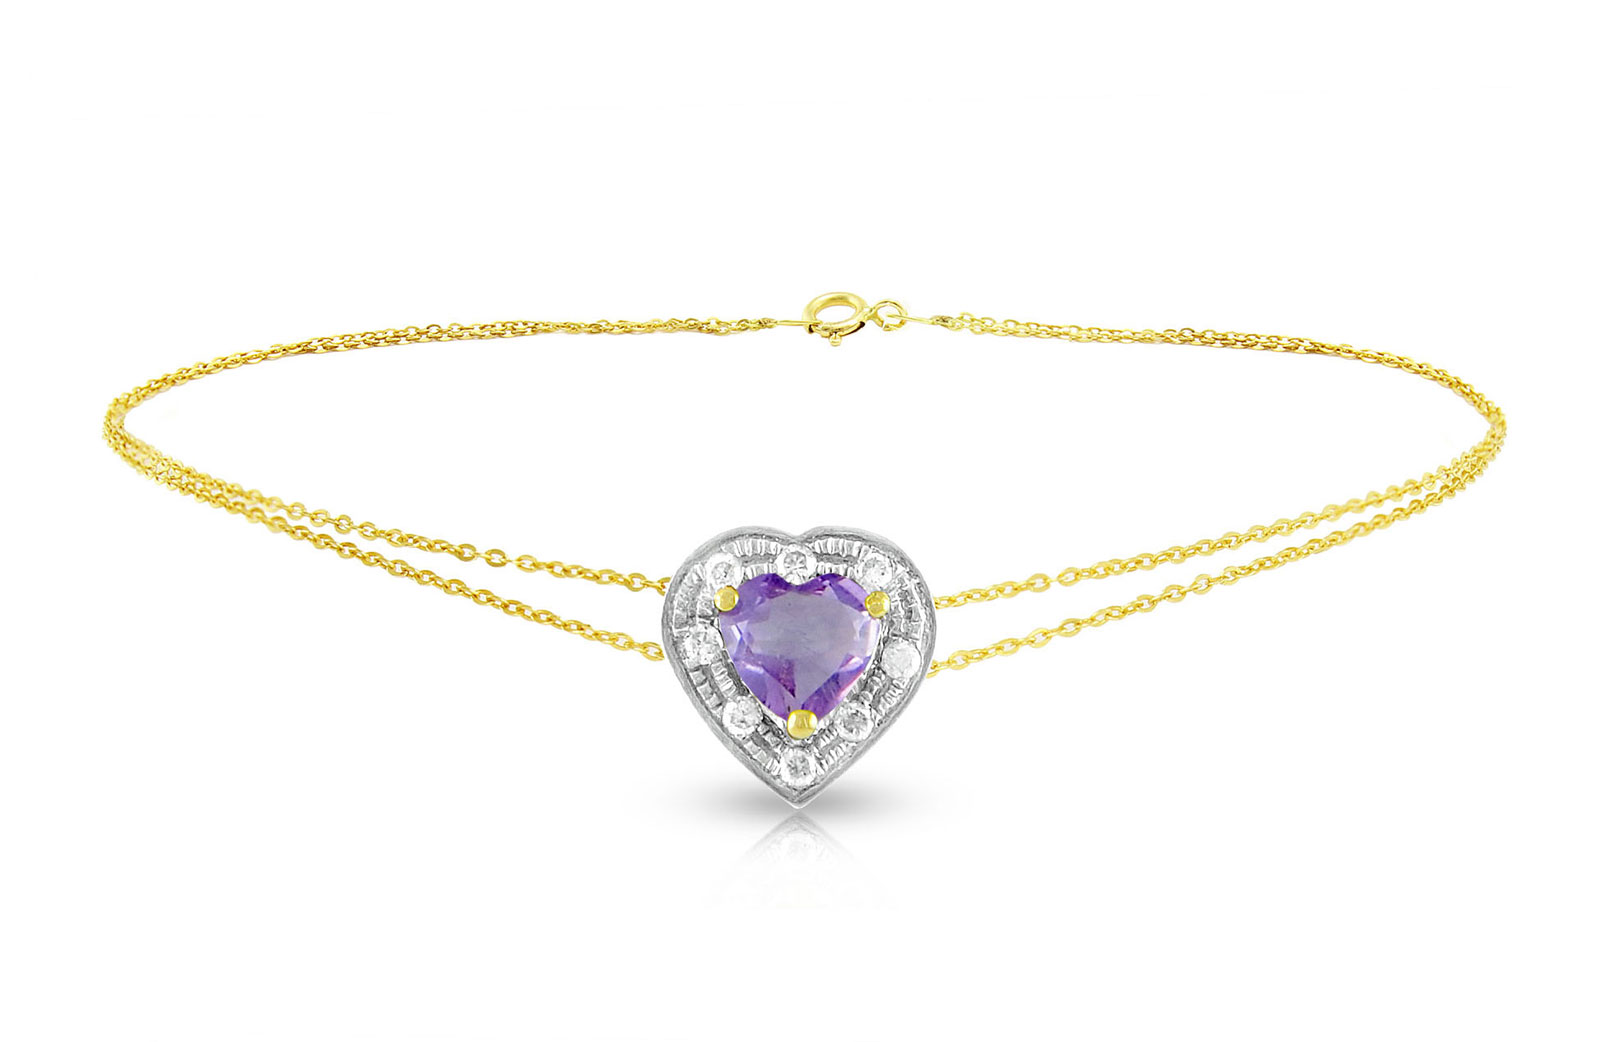 Vera Perla 18K Solid Gold and 0.08Cts Diamonds and 5mm Genuine Amethyst Heart Bracelet